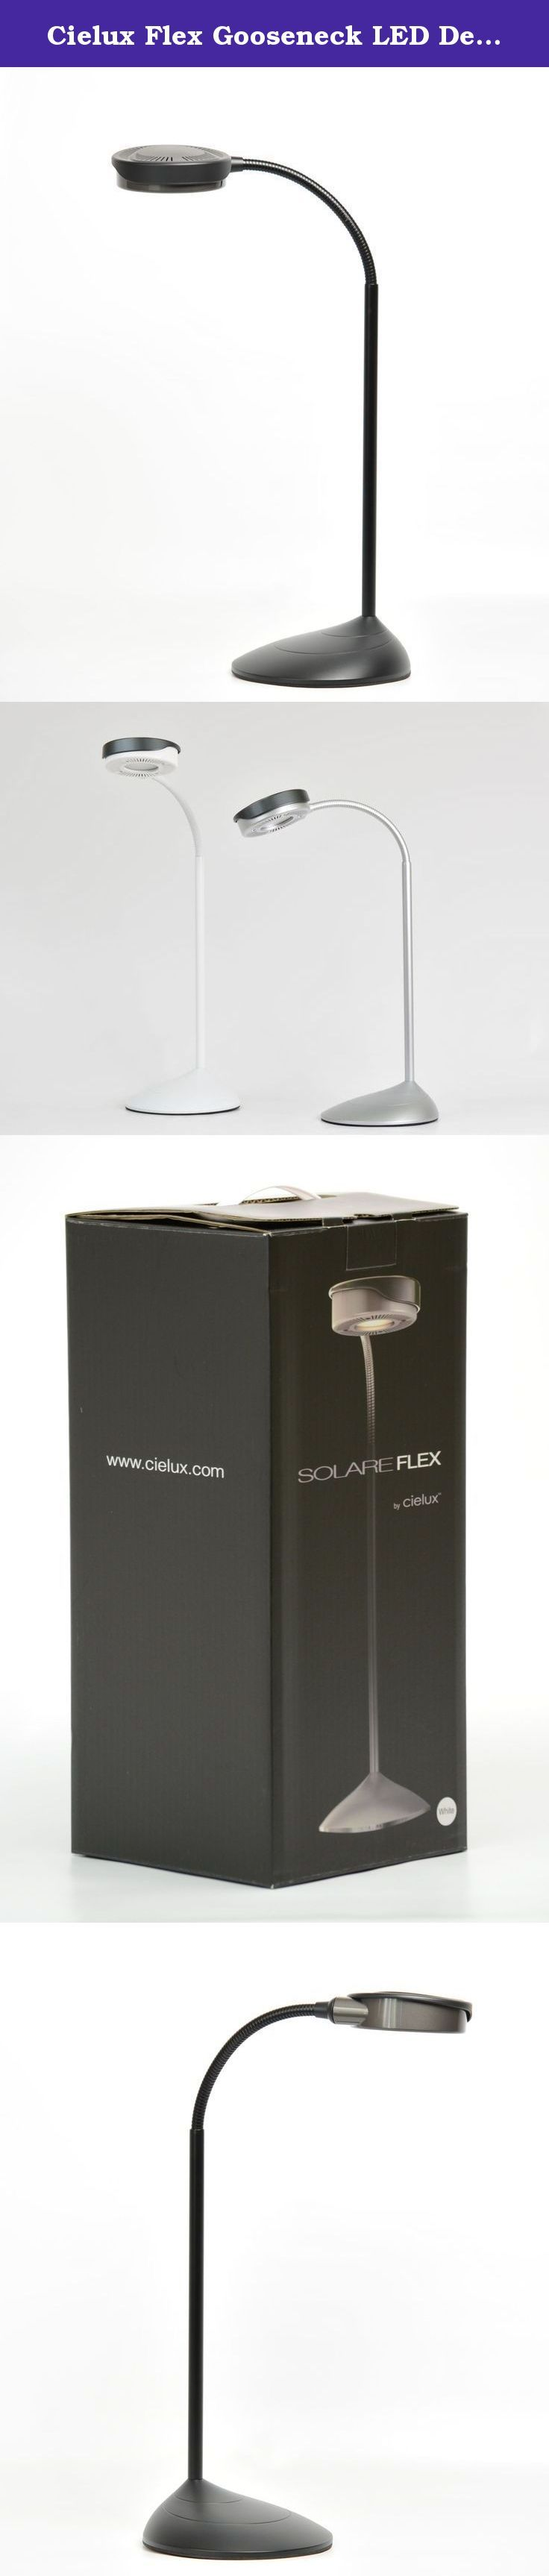 Cielux Flex Gooseneck LED Desk Lamp. SOLARE FLEX LED desk lamp is a unique reinvention of the traditional desk lamp. It features a streamlined body, flexible arm, and intuitive touch controls for ultimate flexibility and usability. In a simple, fluid movement, adjust SOLARE FLEX's bendable arm and manueverable head to point in almost any direction. SOLARE FLEX incorporates Dense Matrix LED technology to emit brilliant CCT tunable light with superior CRI and dimming capabilities. SOLARE…